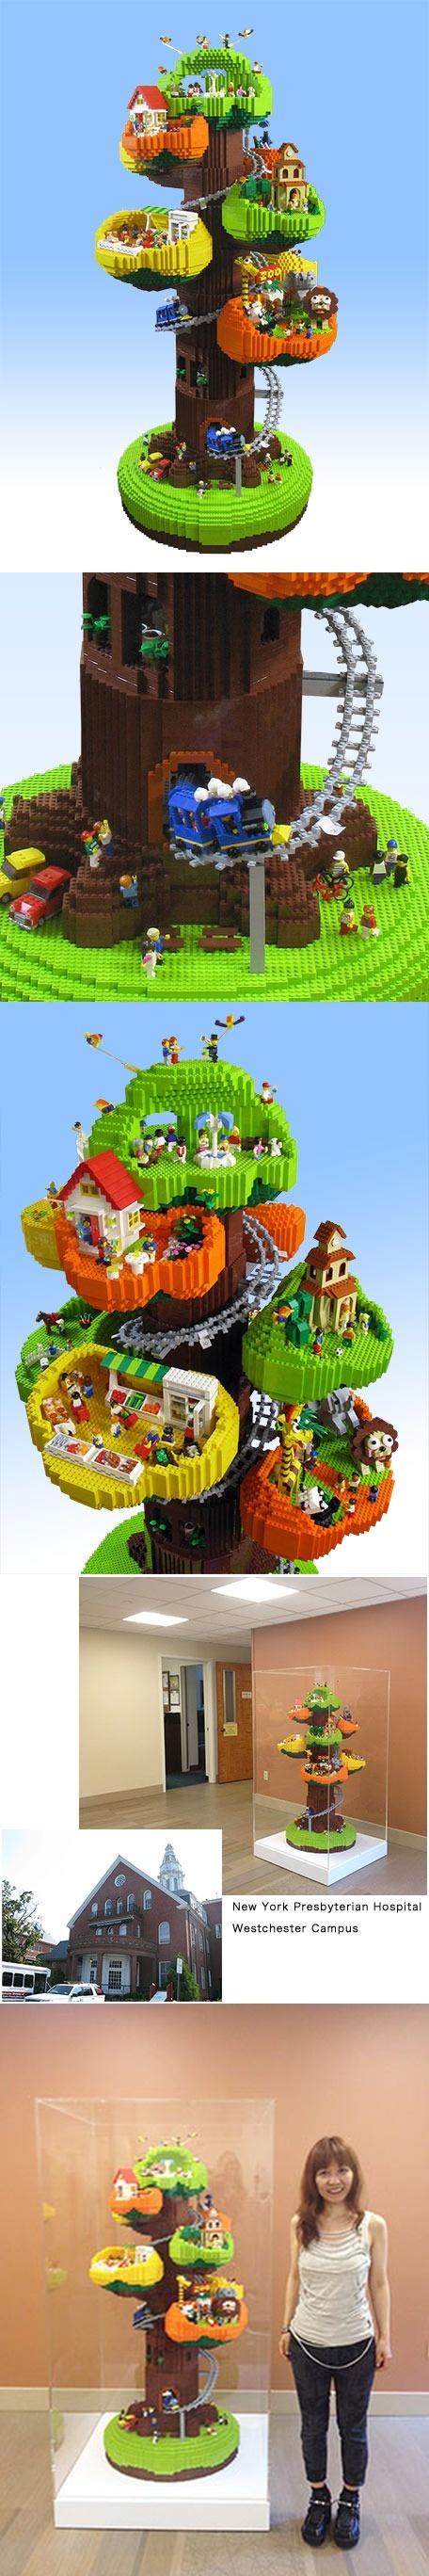 Welcome to the Tree Town! About 40,000 pieces of LEGO Bricks H1500 × W750 × D750 mm colection New York Presbyterian Hospital, USA #LEGO